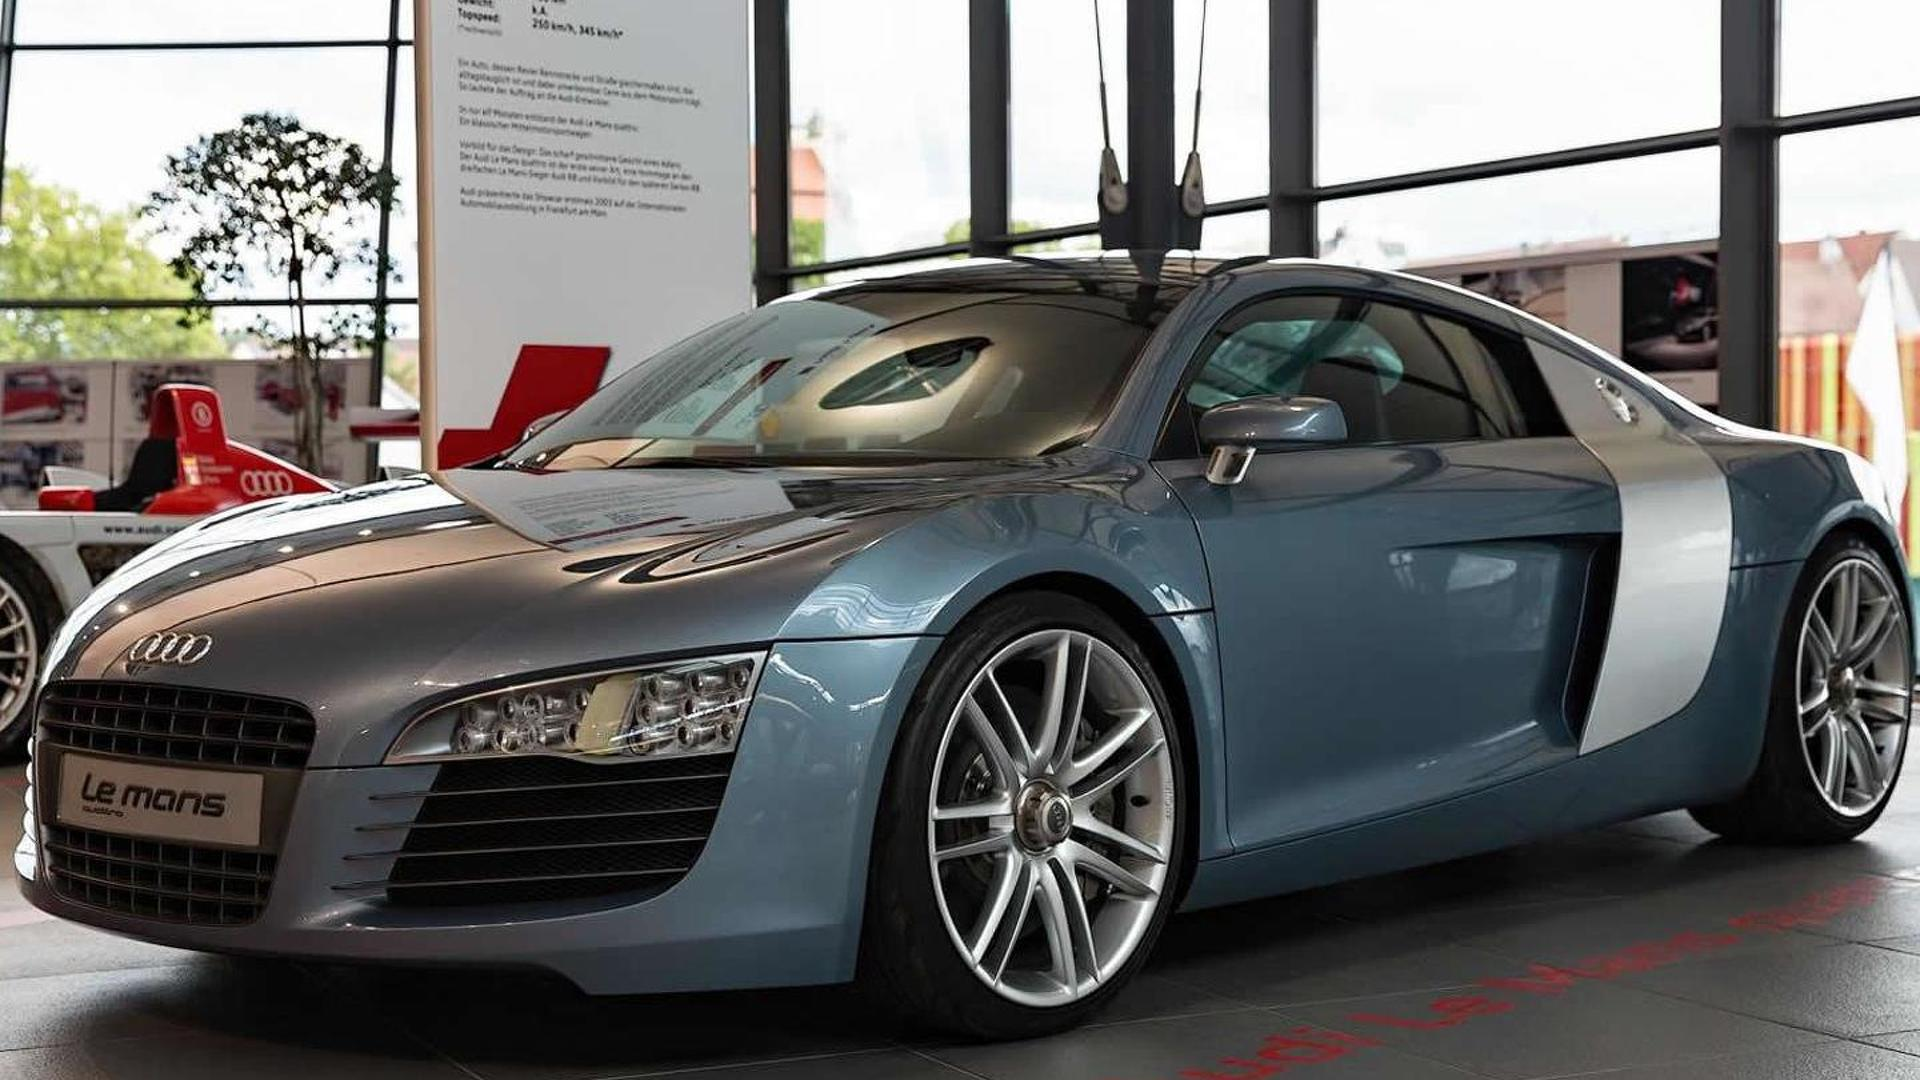 2003 Audi Le Mans Quattro Concept Displayed Together With 2017 R8 V10 Plus